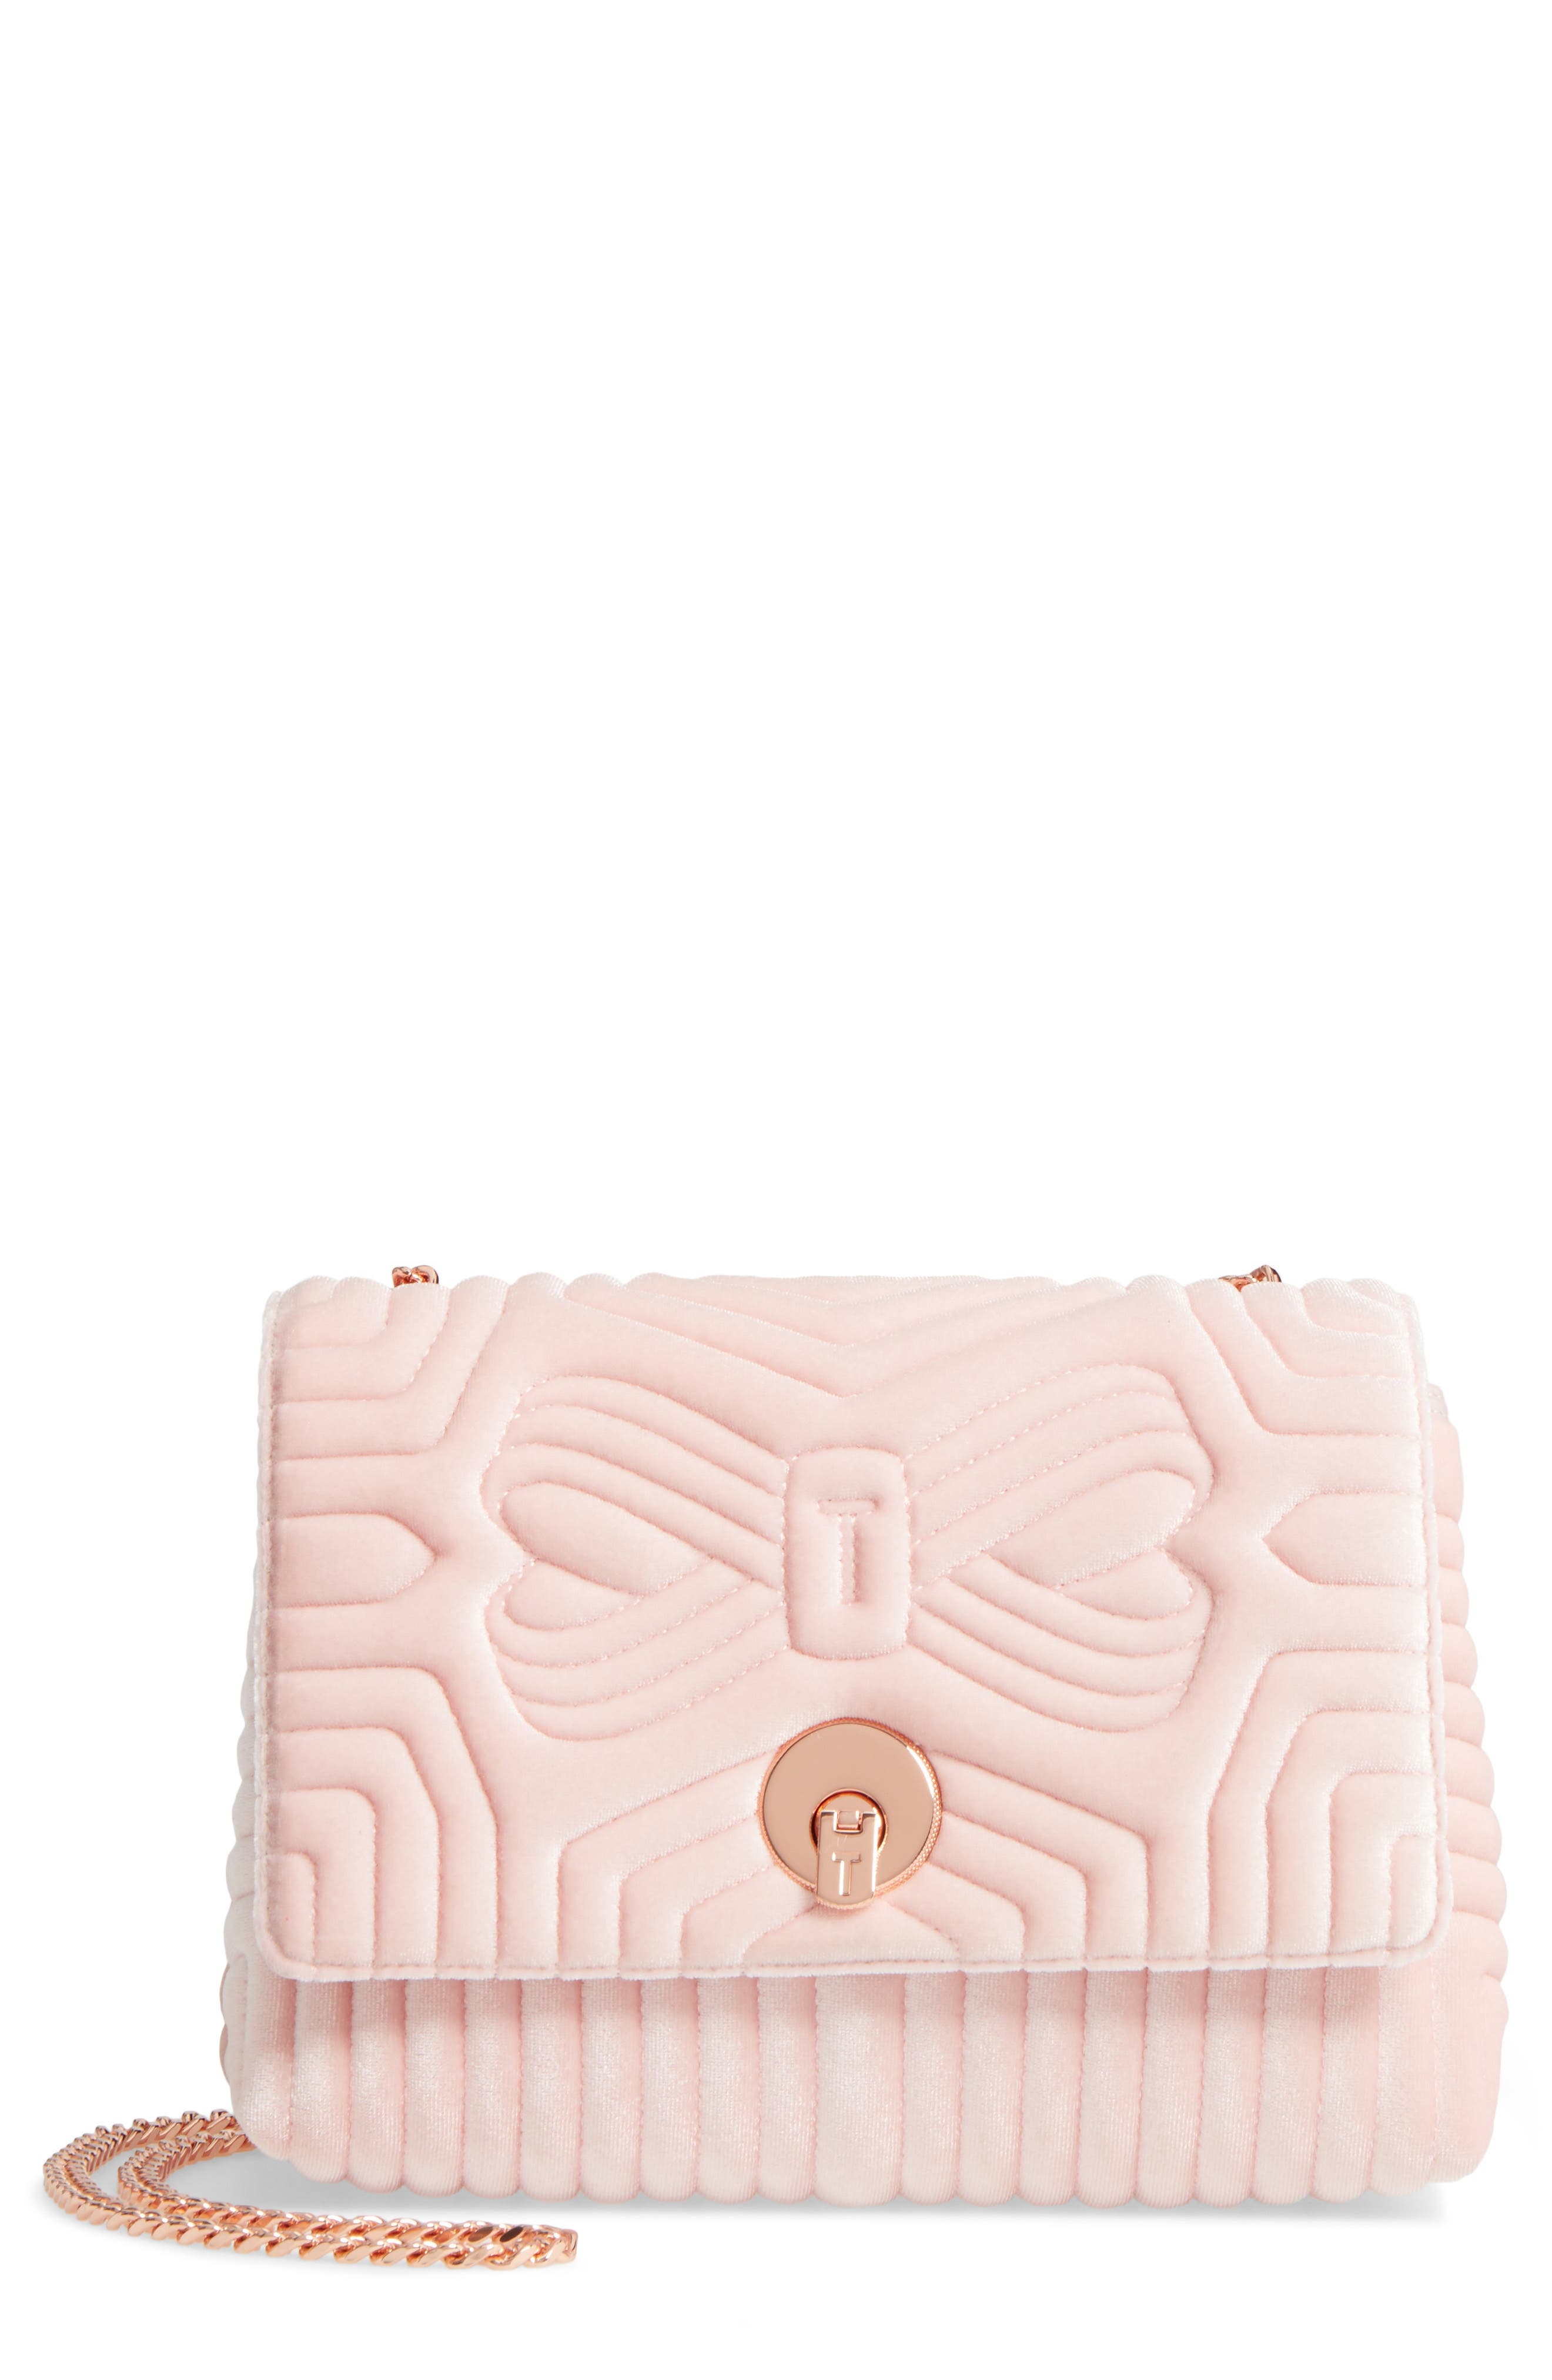 Alternate Image 1 Selected - Ted Baker London Quilted Velvet Crossbody Bag